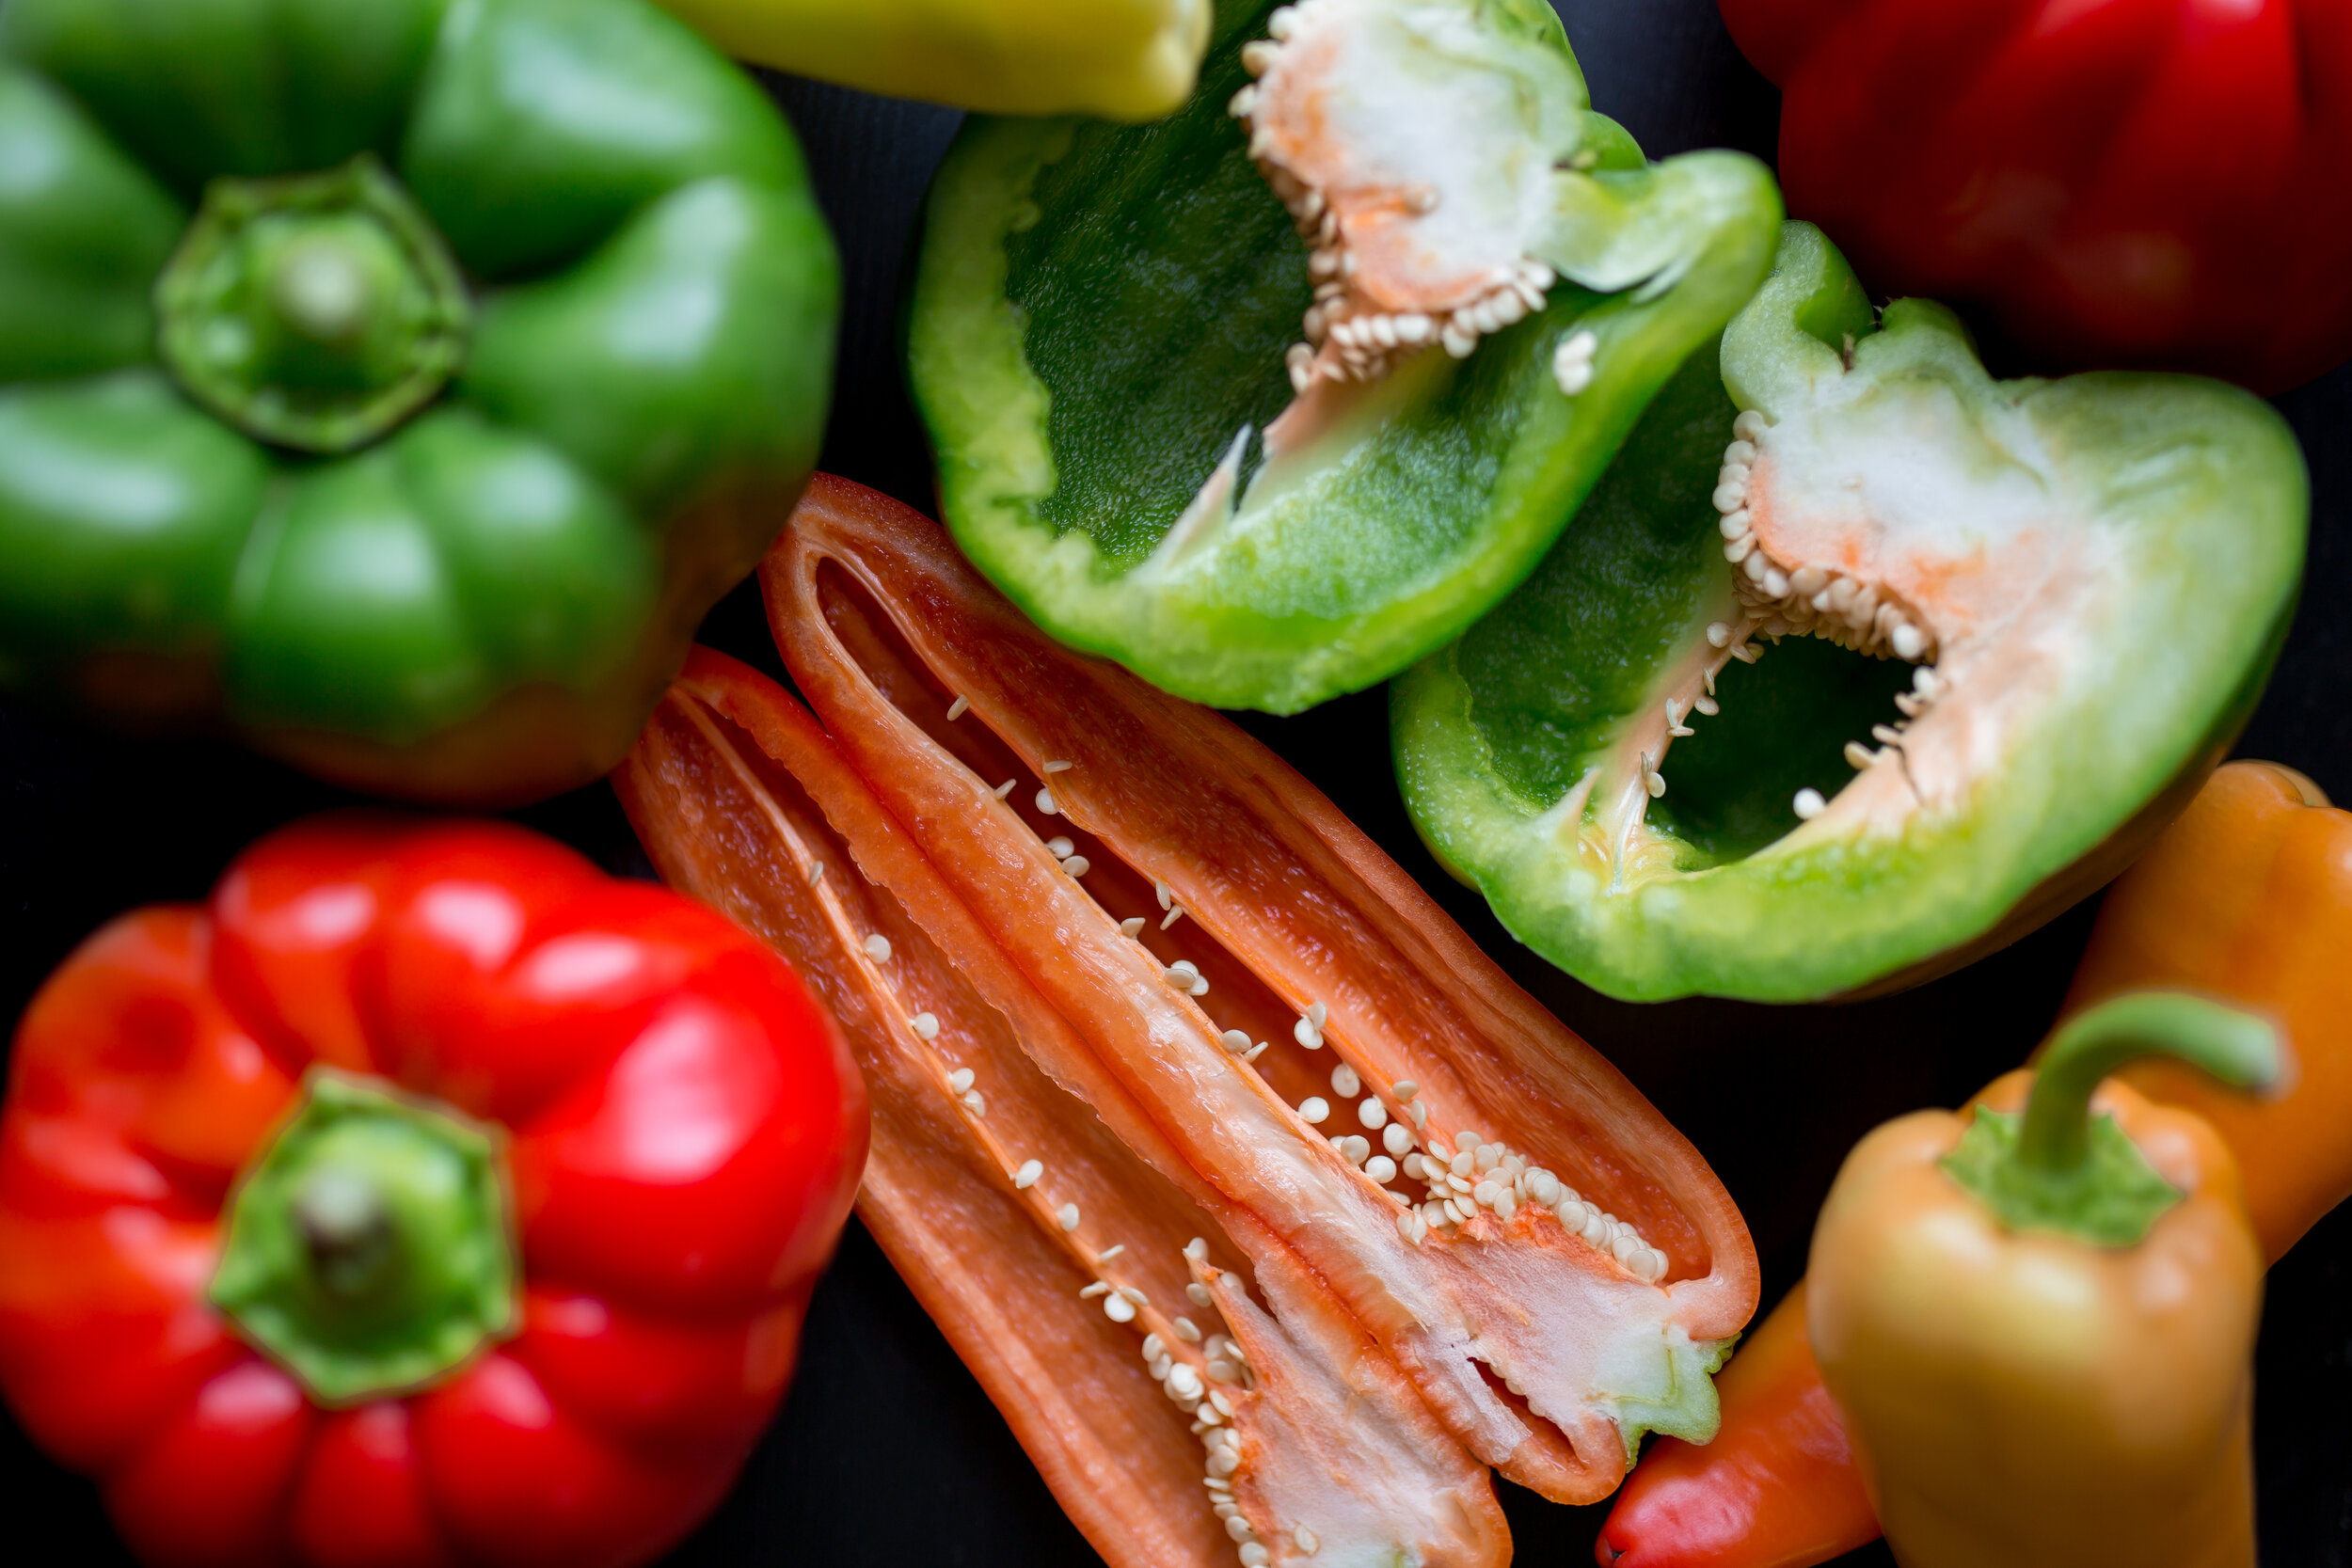 To Store - Keep refrigerated and unwashed.Red peppers can be kept 4-5 days, green up to a week